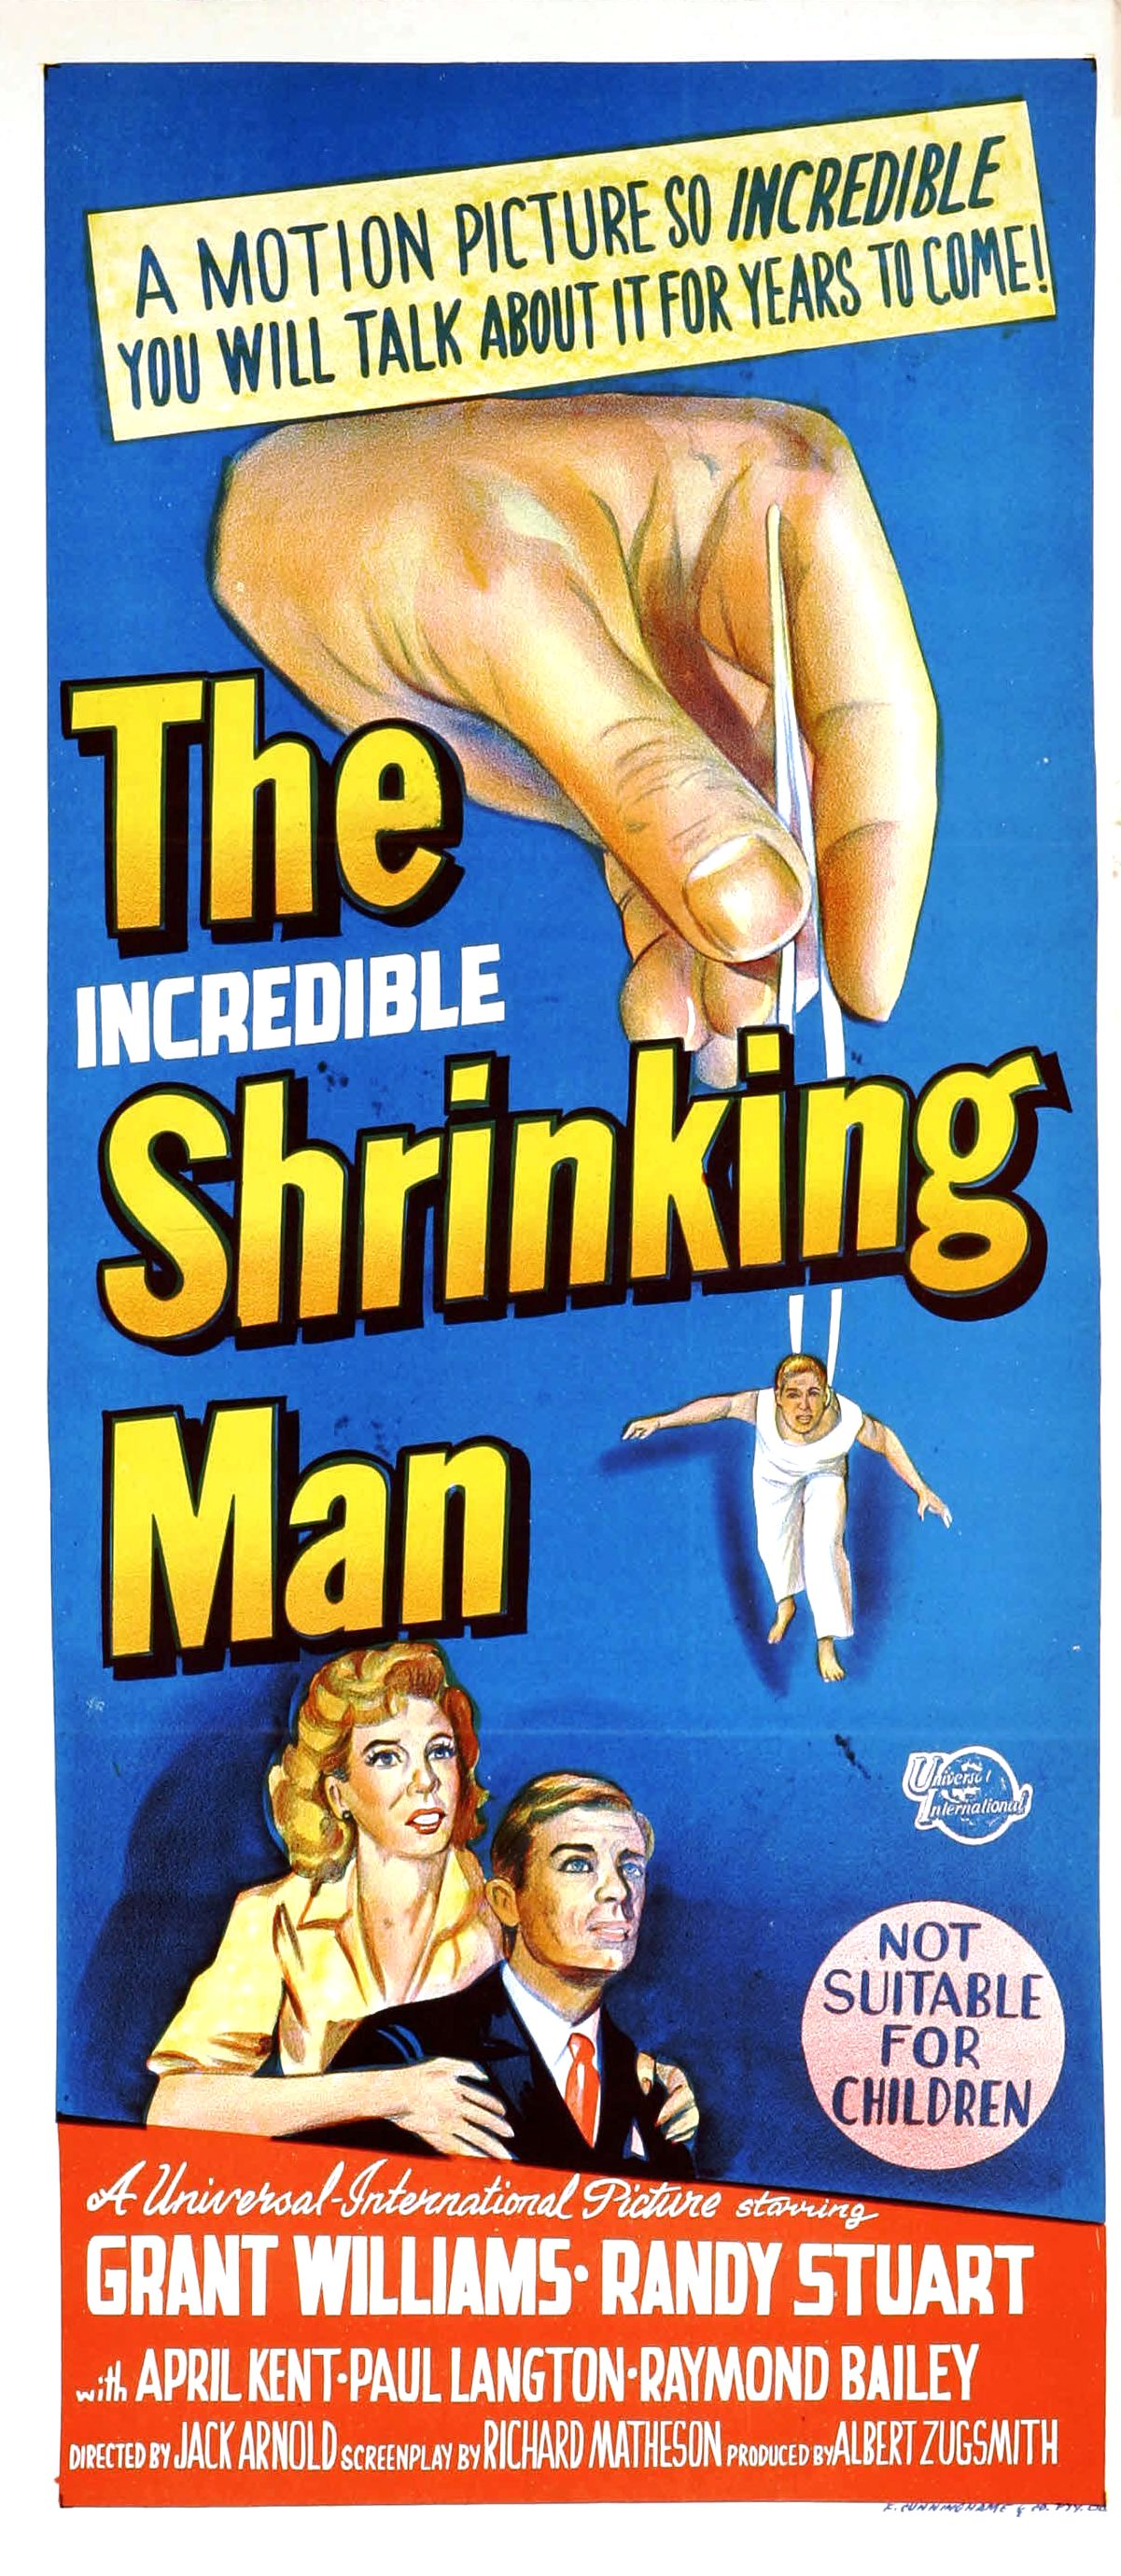 http://drnorth.files.wordpress.com/2010/10/incredible_shrinking_man_poster_06.jpg Incredible Shrinking Man Poster